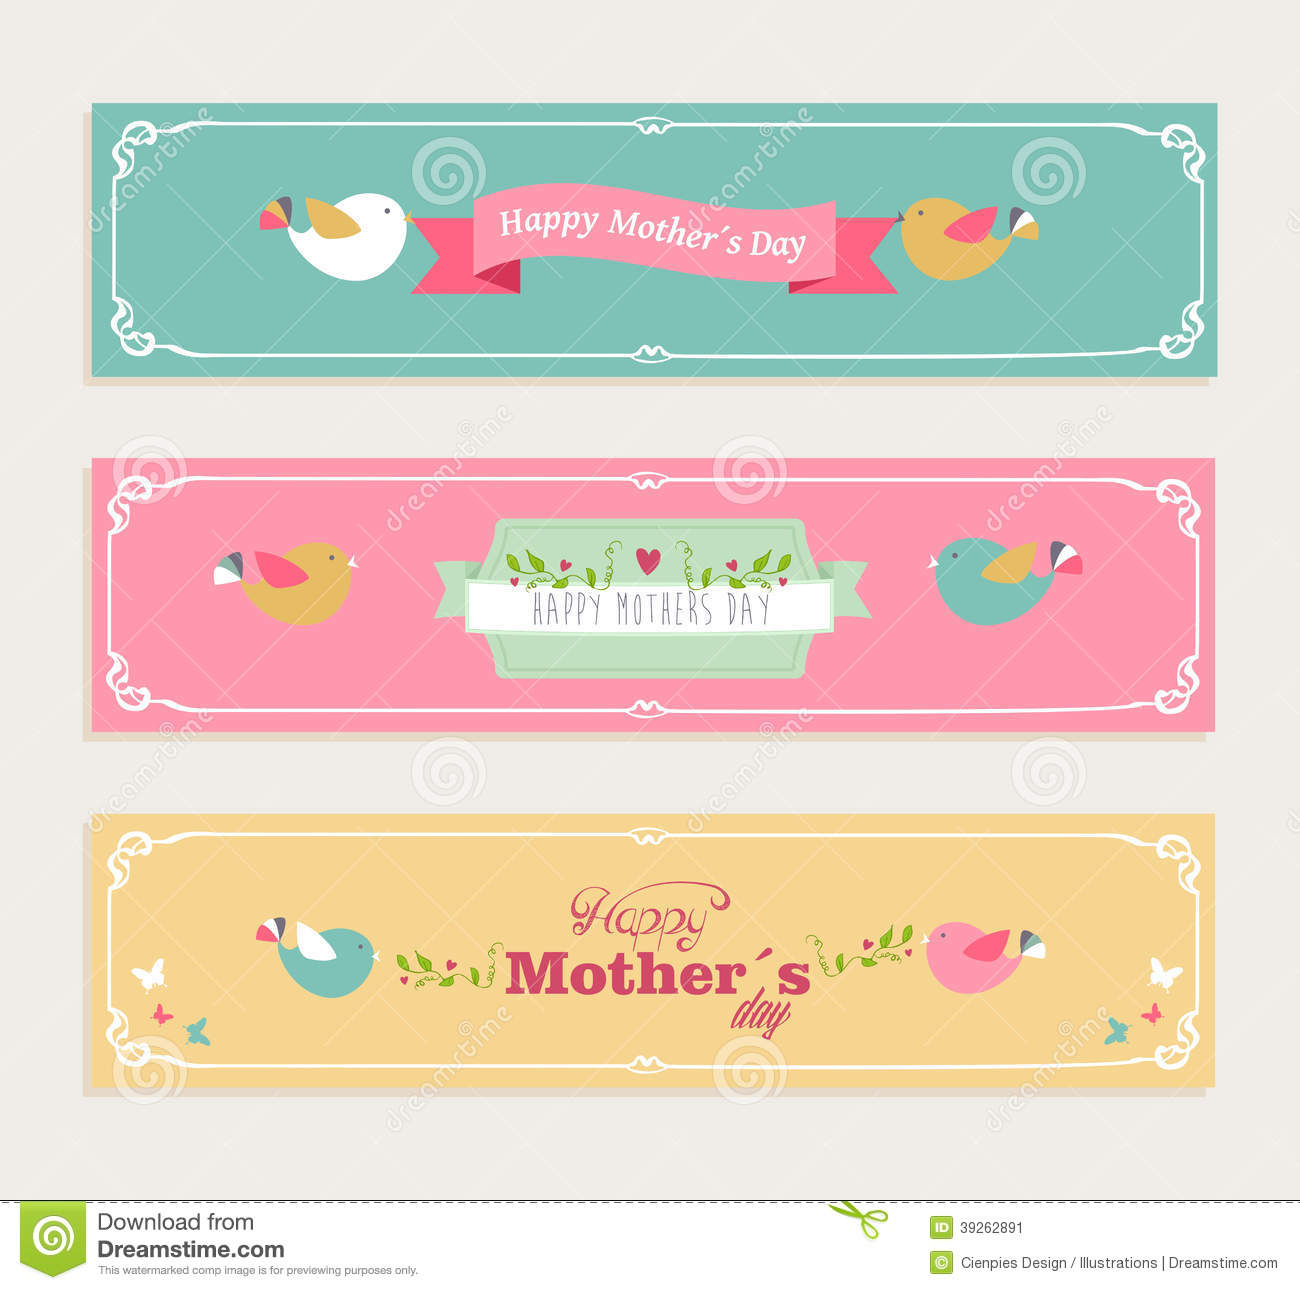 Vintage Happy Mothers Day Banners Set Stock Vector - Image ...